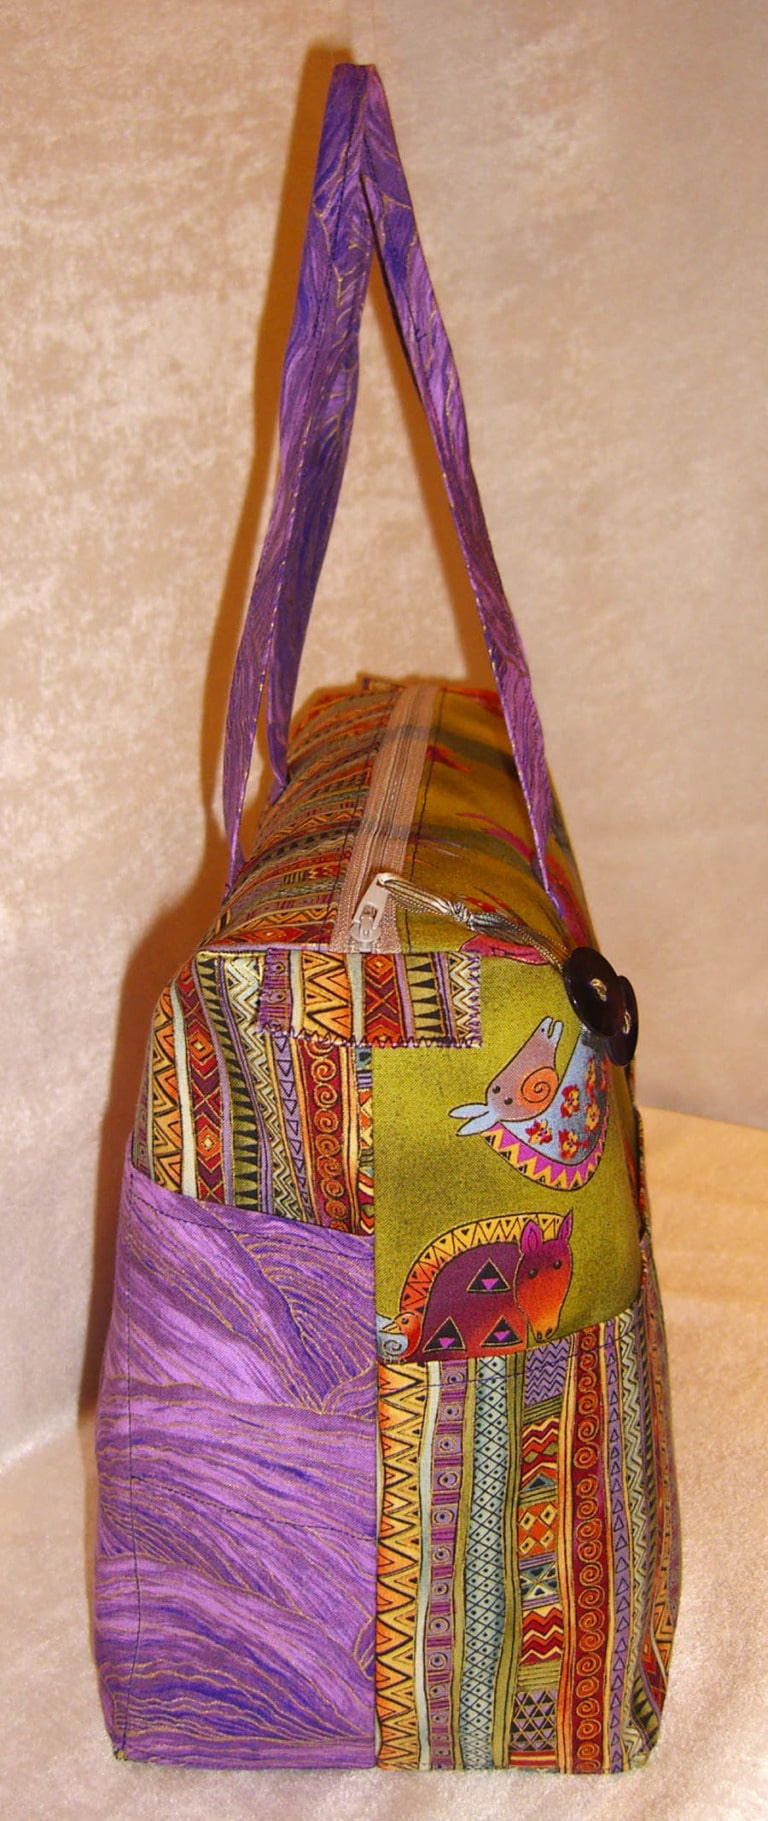 laurel-burch-summer-tote-side-view.jpg